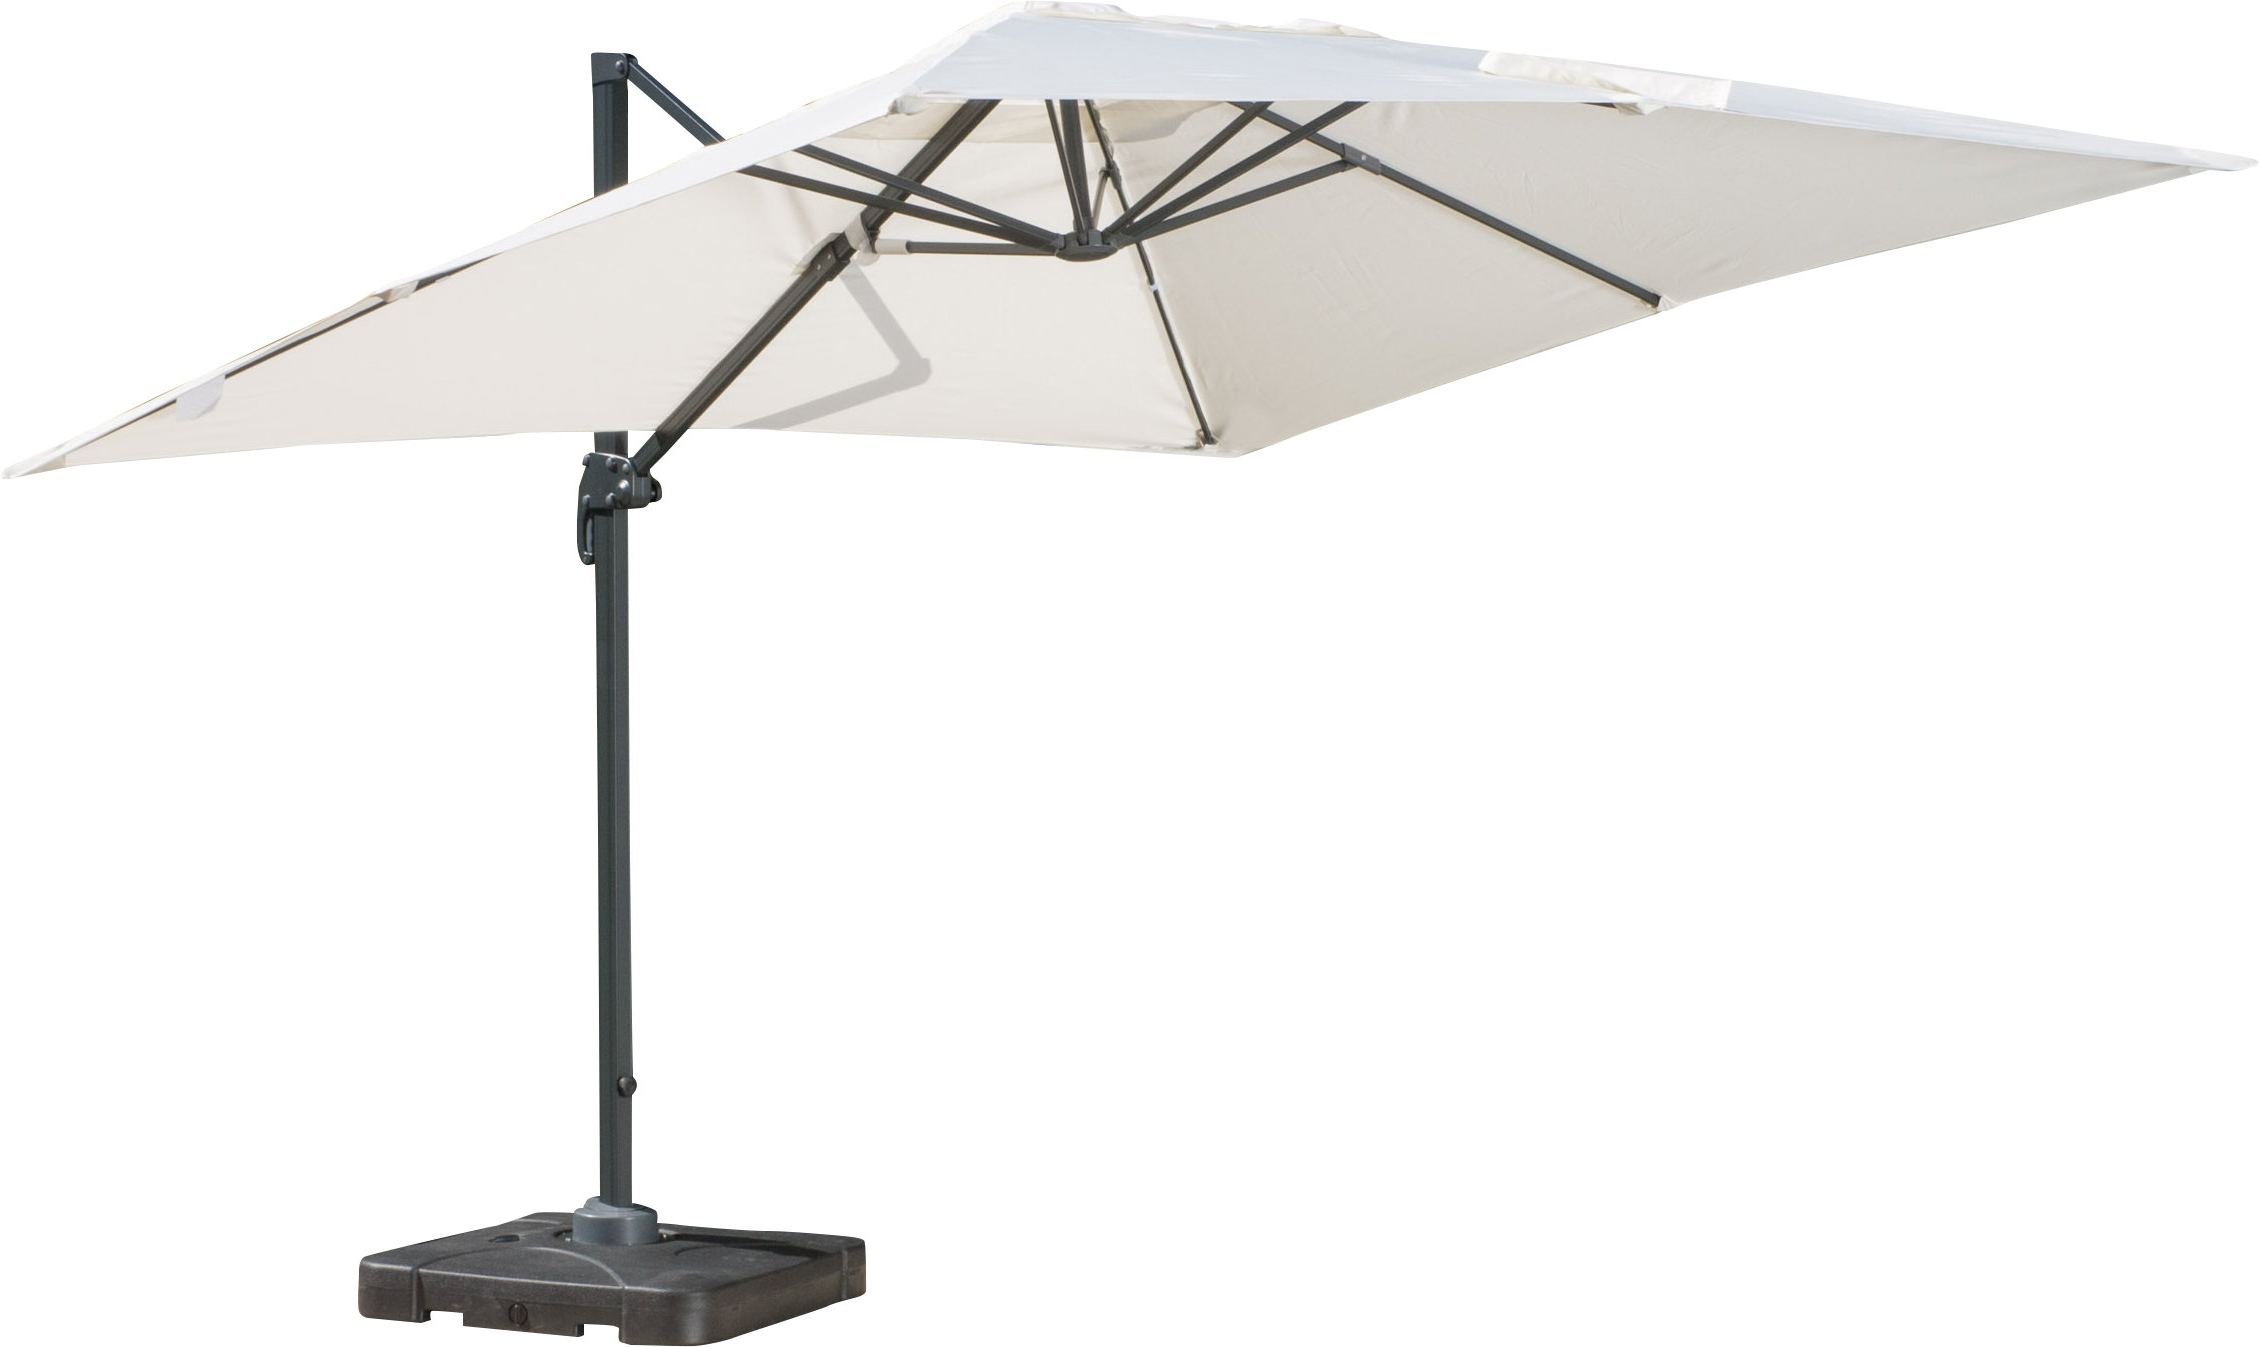 Boracay 10' Square Cantilever Umbrella Throughout Most Recent Anna Cantilever Umbrellas (View 6 of 20)